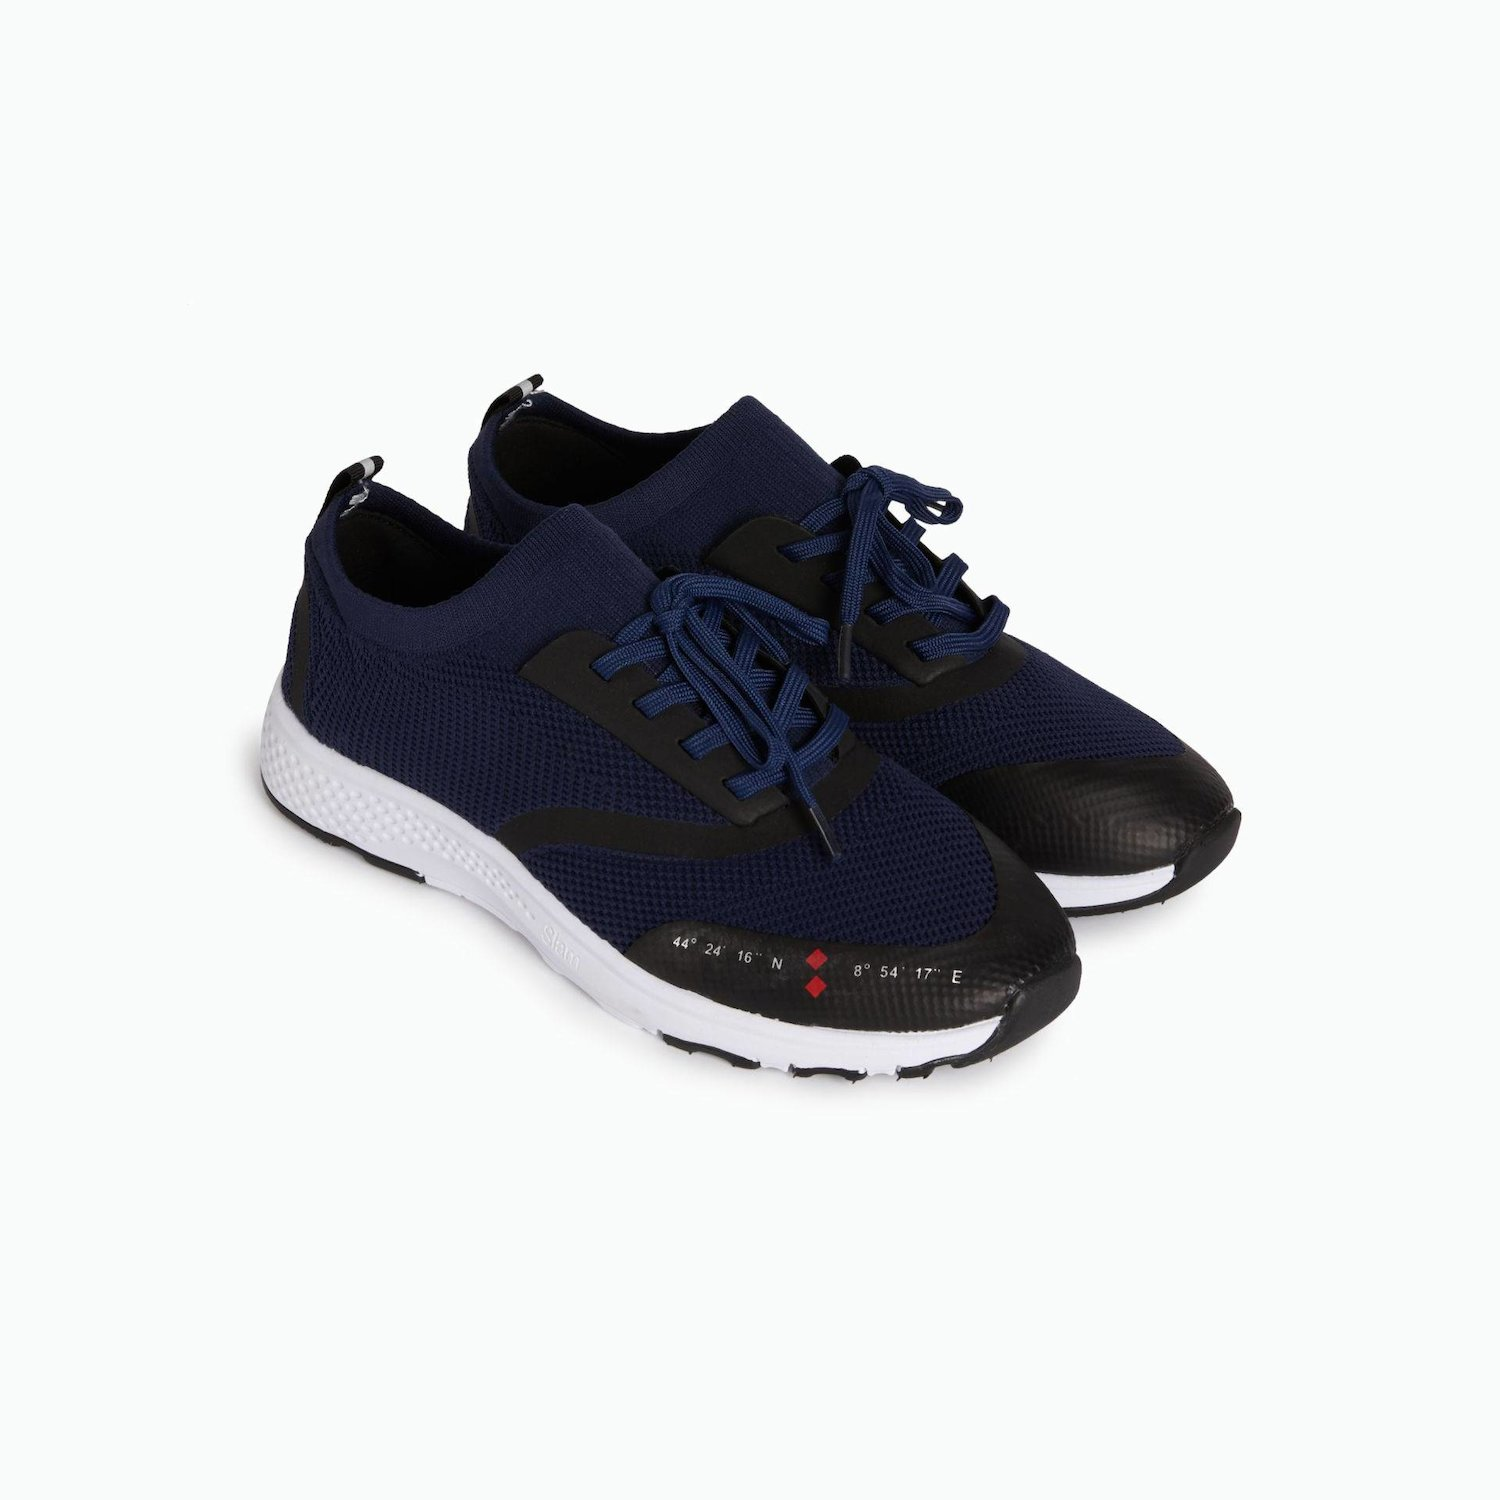 B211 Slip On Shoe - Navy